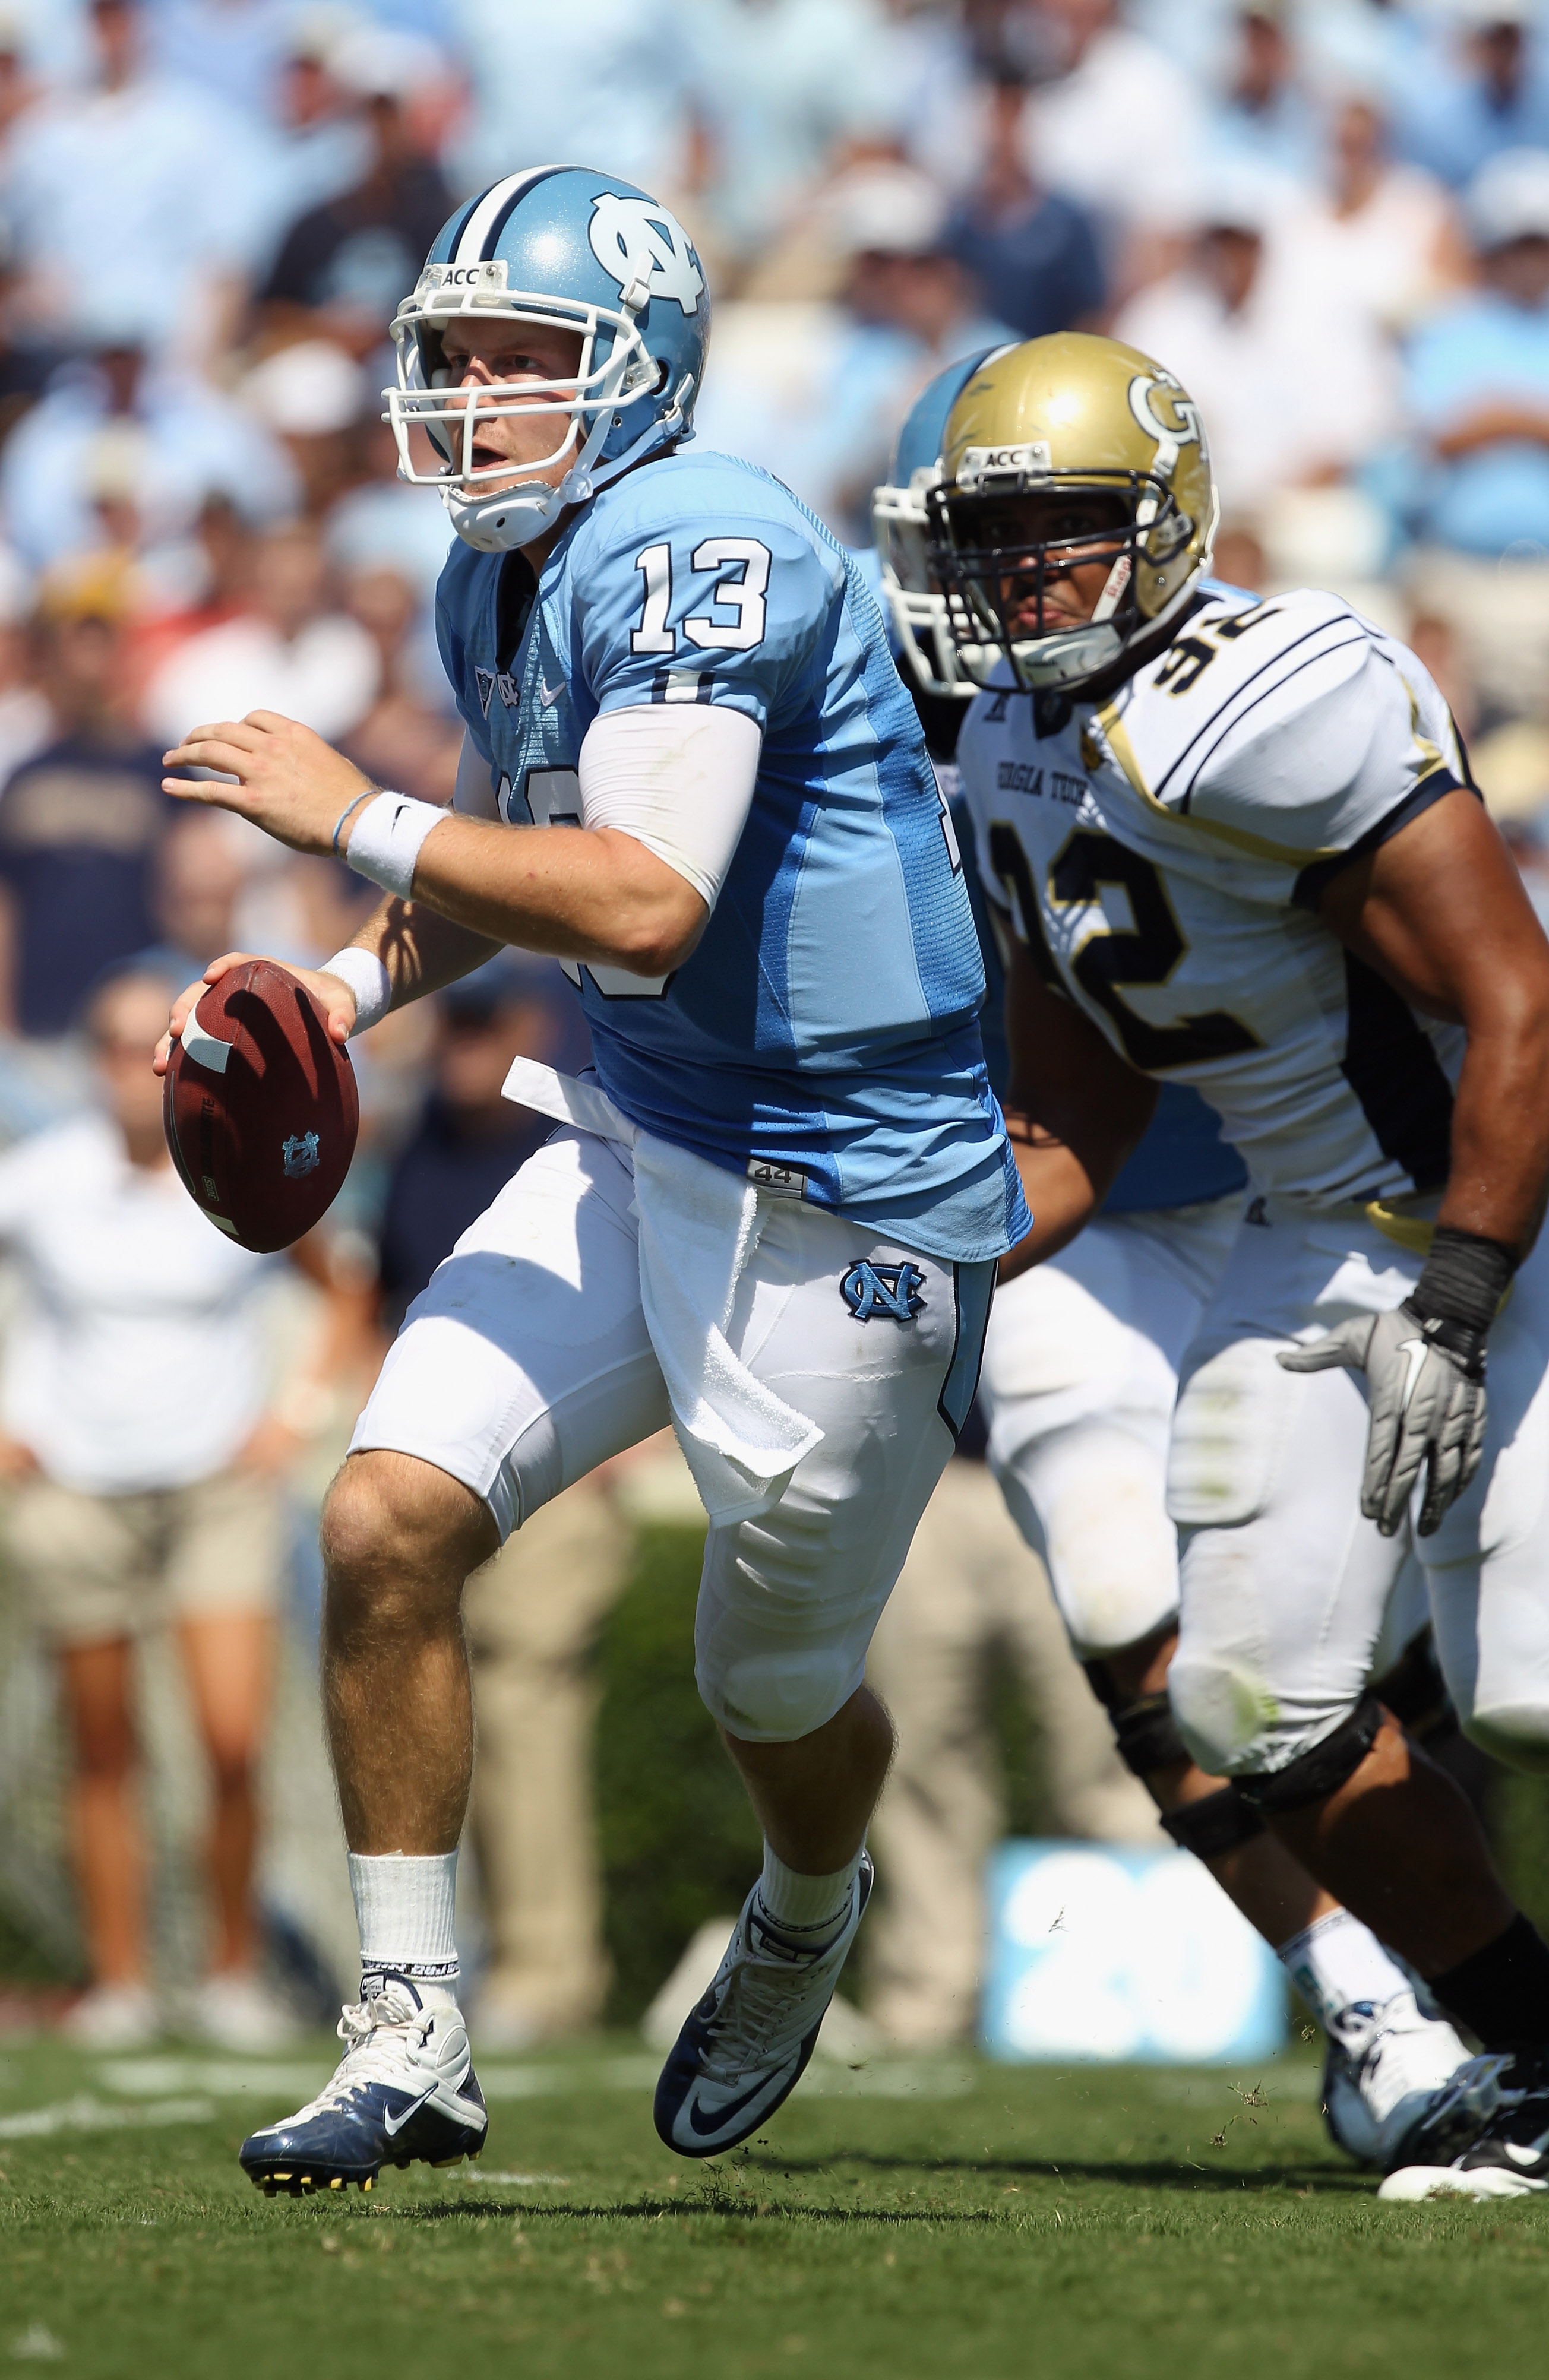 CHAPEL HILL, NC - SEPTEMBER 18:  T.J. Yates #13 of the North Carolina Tar Heels runs away from Jason Peters #92 of the Georgia Tech Yellow Jackets during their game at Kenan Stadium on September 18, 2010 in Chapel Hill, North Carolina.  (Photo by Streeter